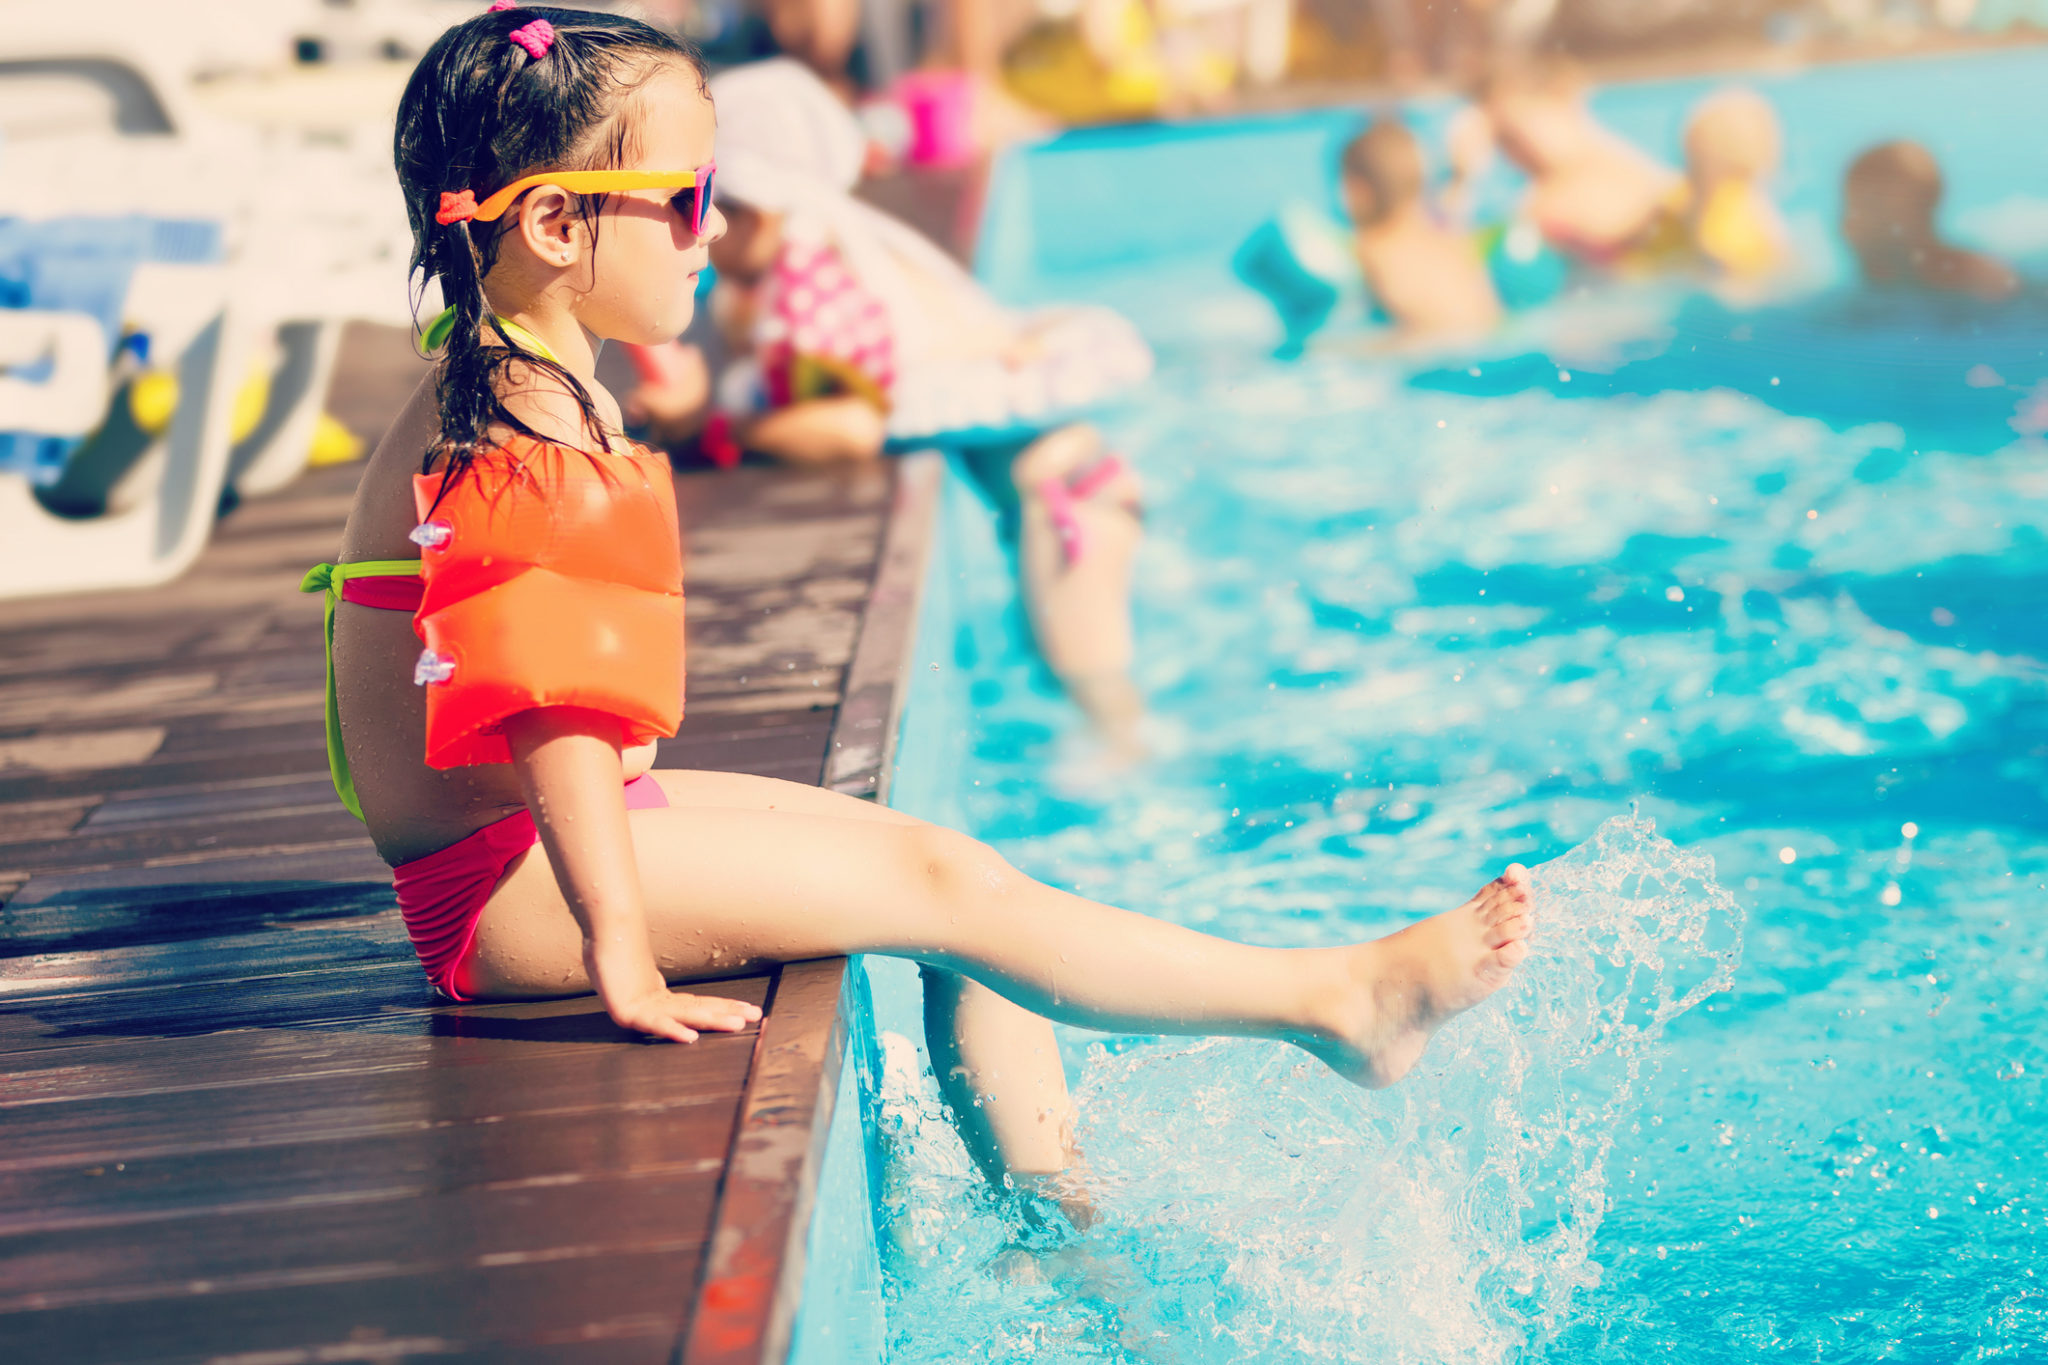 Little girl playing in outdoor swimming pool jumping into water on summer vacation on tropical beach island. Child learning to swim in outdoor pool of luxury resort.